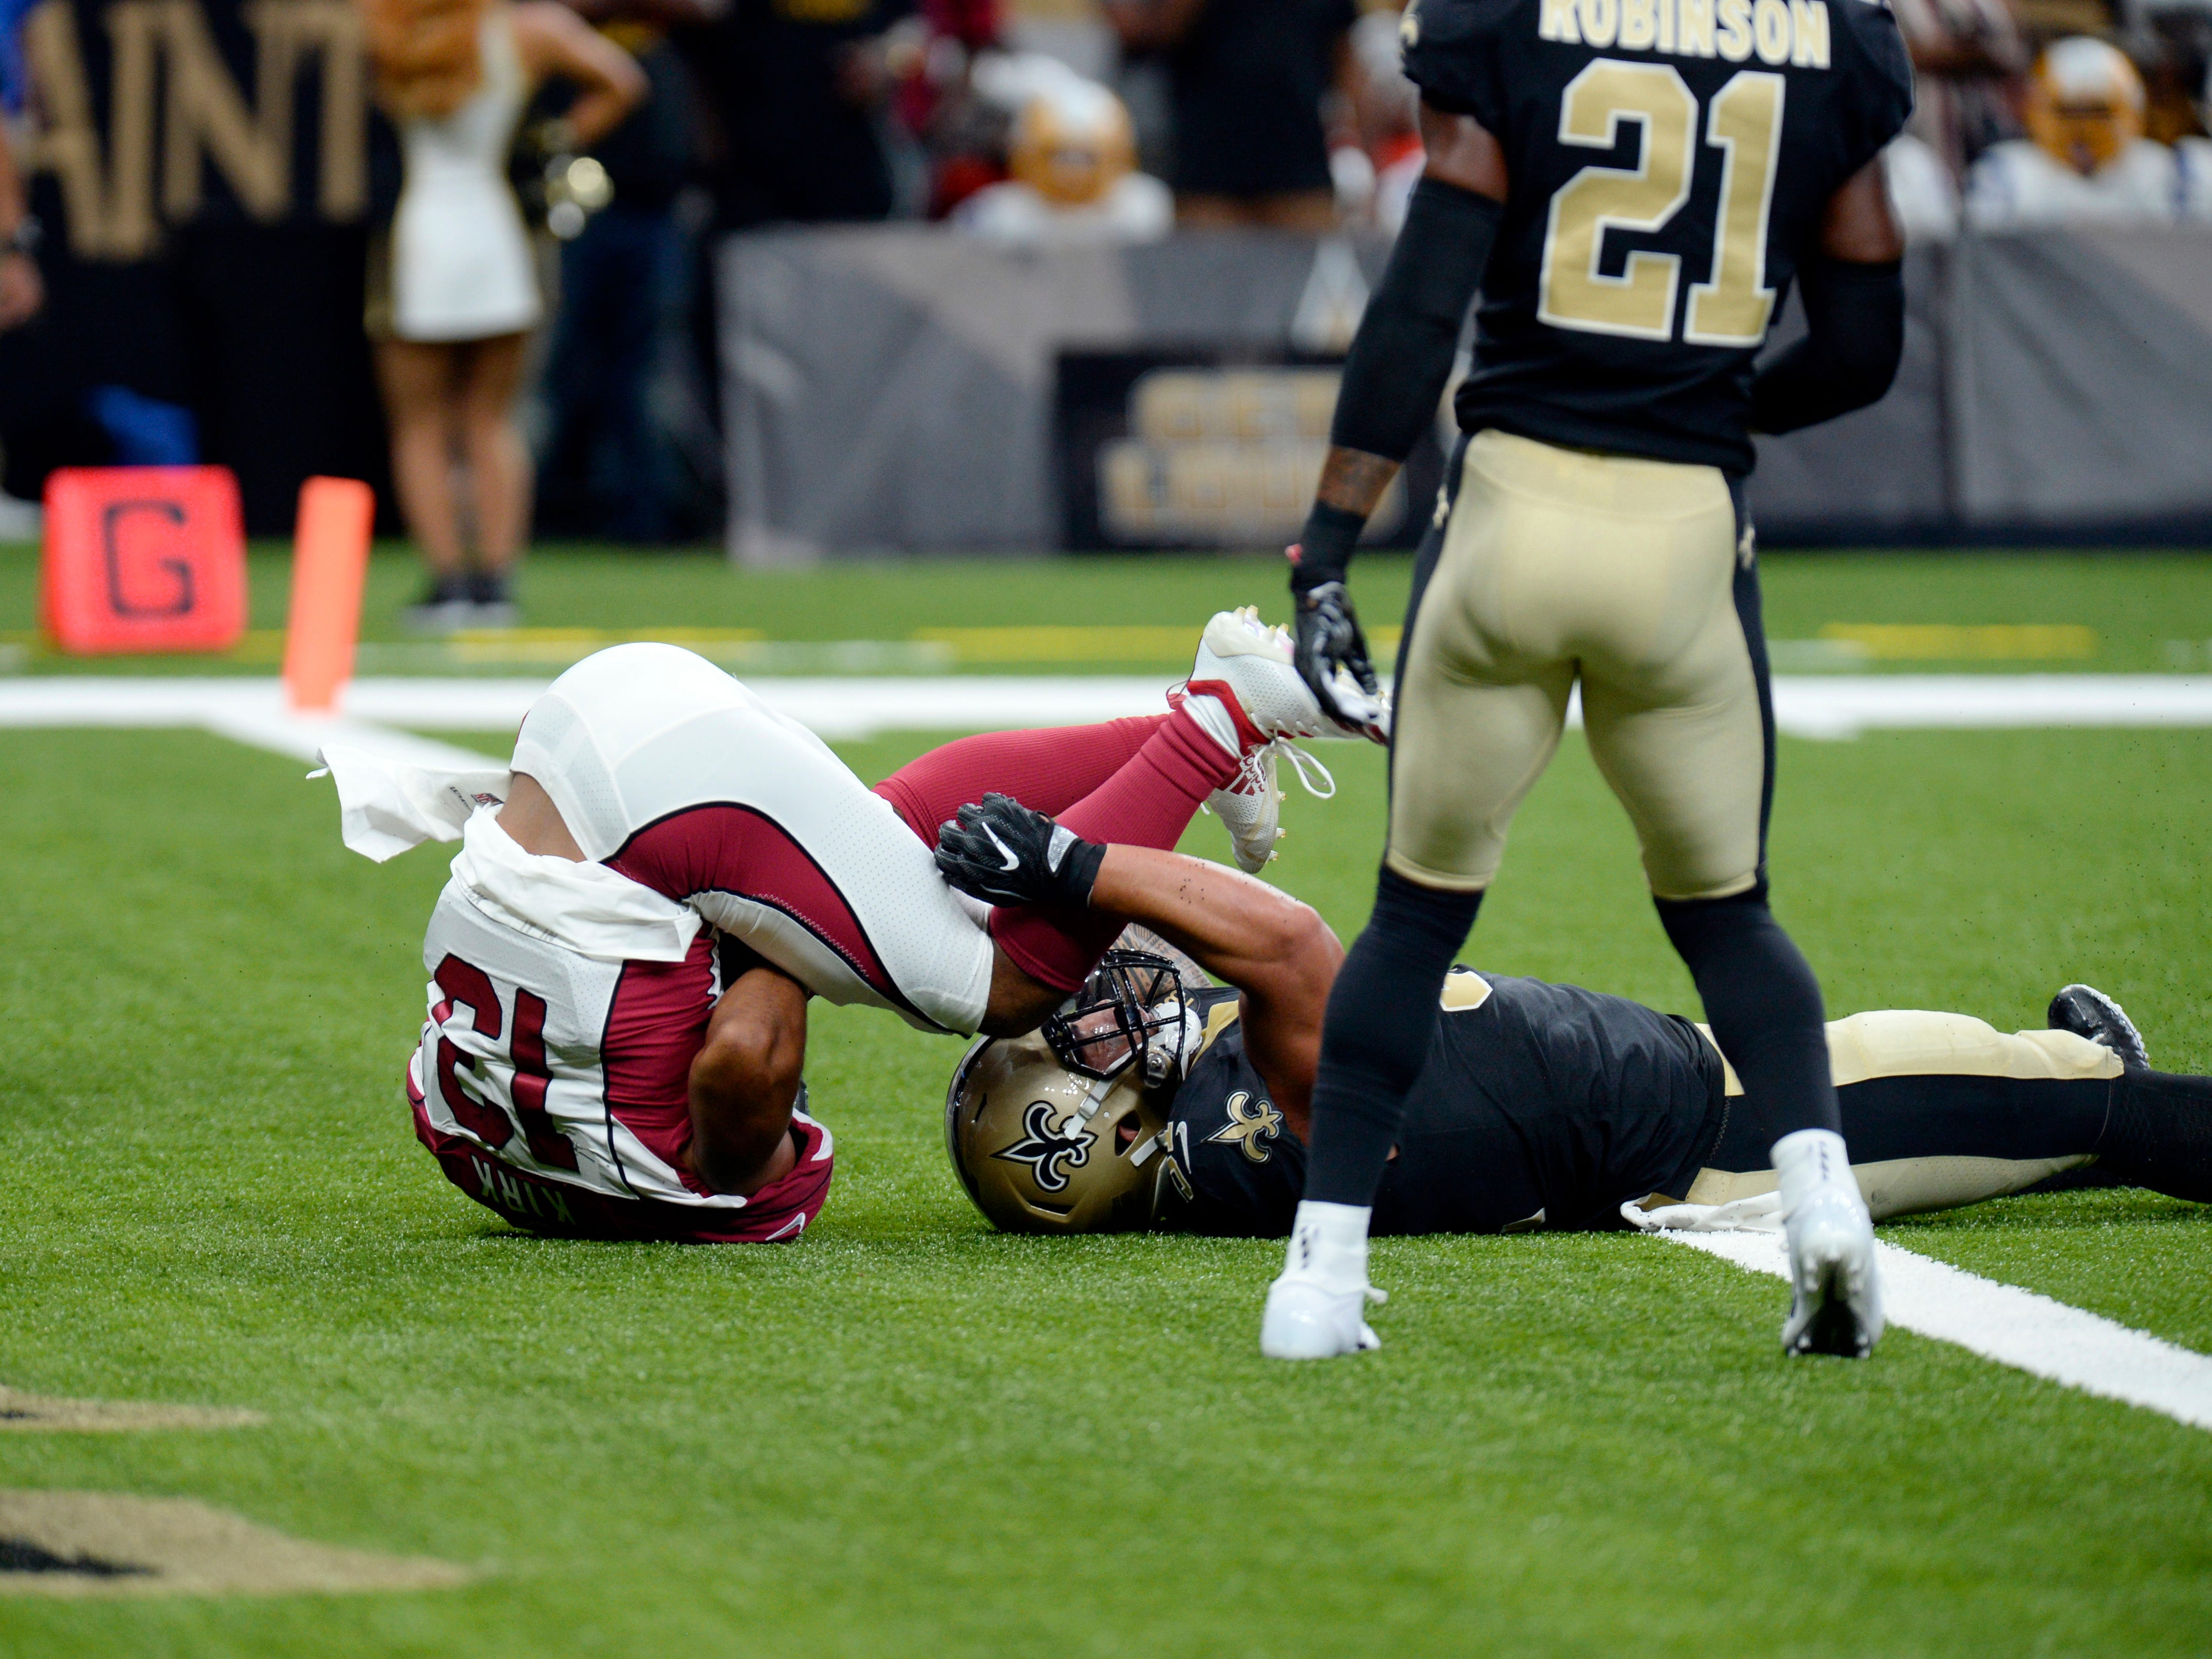 Arizona Cardinals wide receiver Christian Kirk (13) pulls in a touchdown reception as New Orleans Saints linebacker Manti Te'o covers in the first half of an NFL preseason football game in New Orleans, Friday, Aug. 17, 2018.